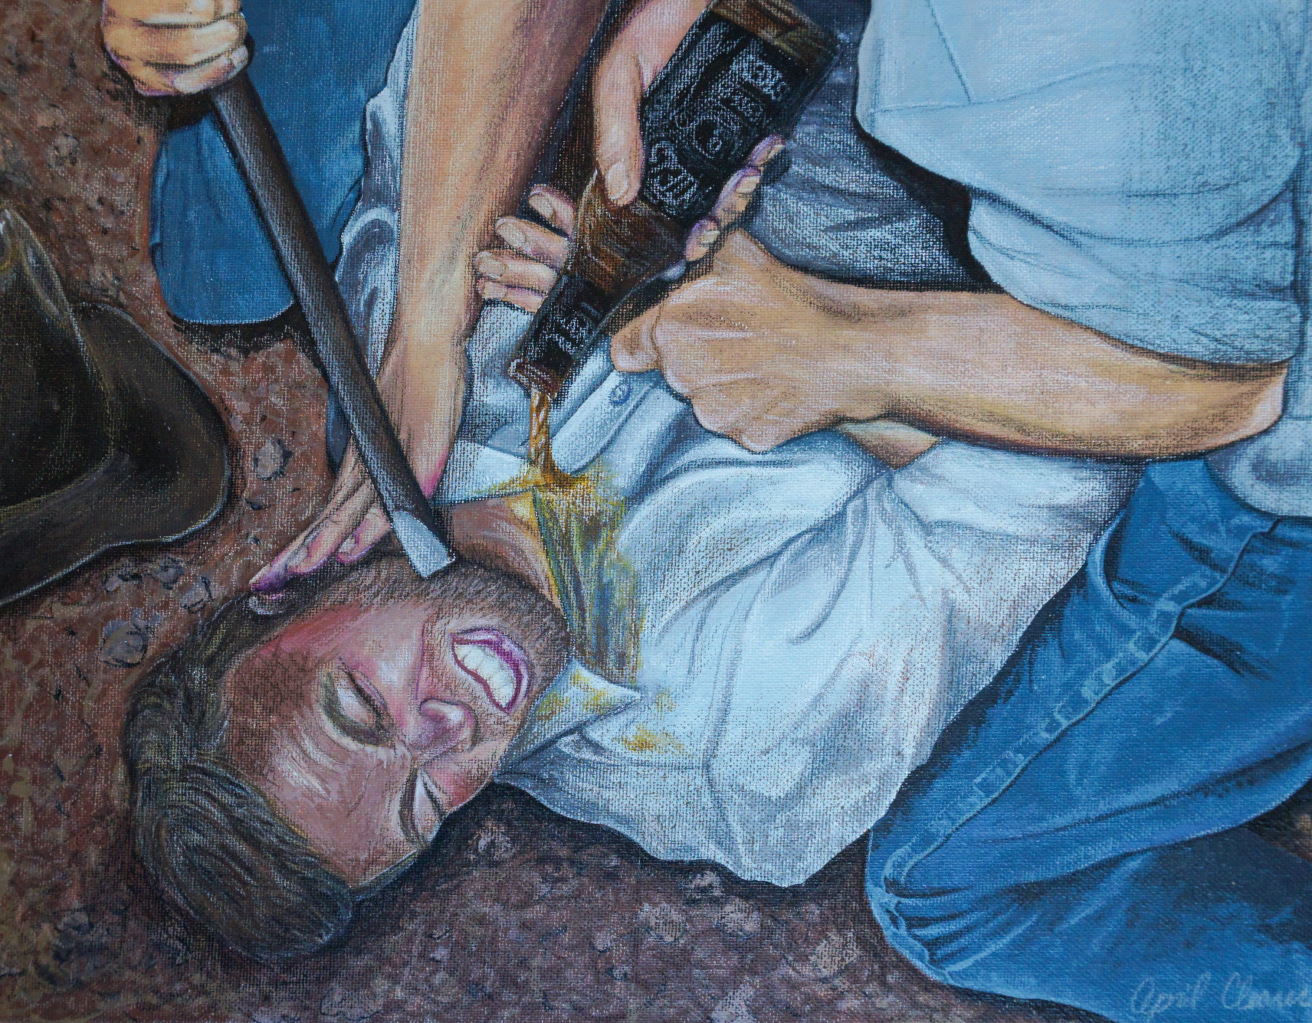 Painting of a scuffle - One Good Drink